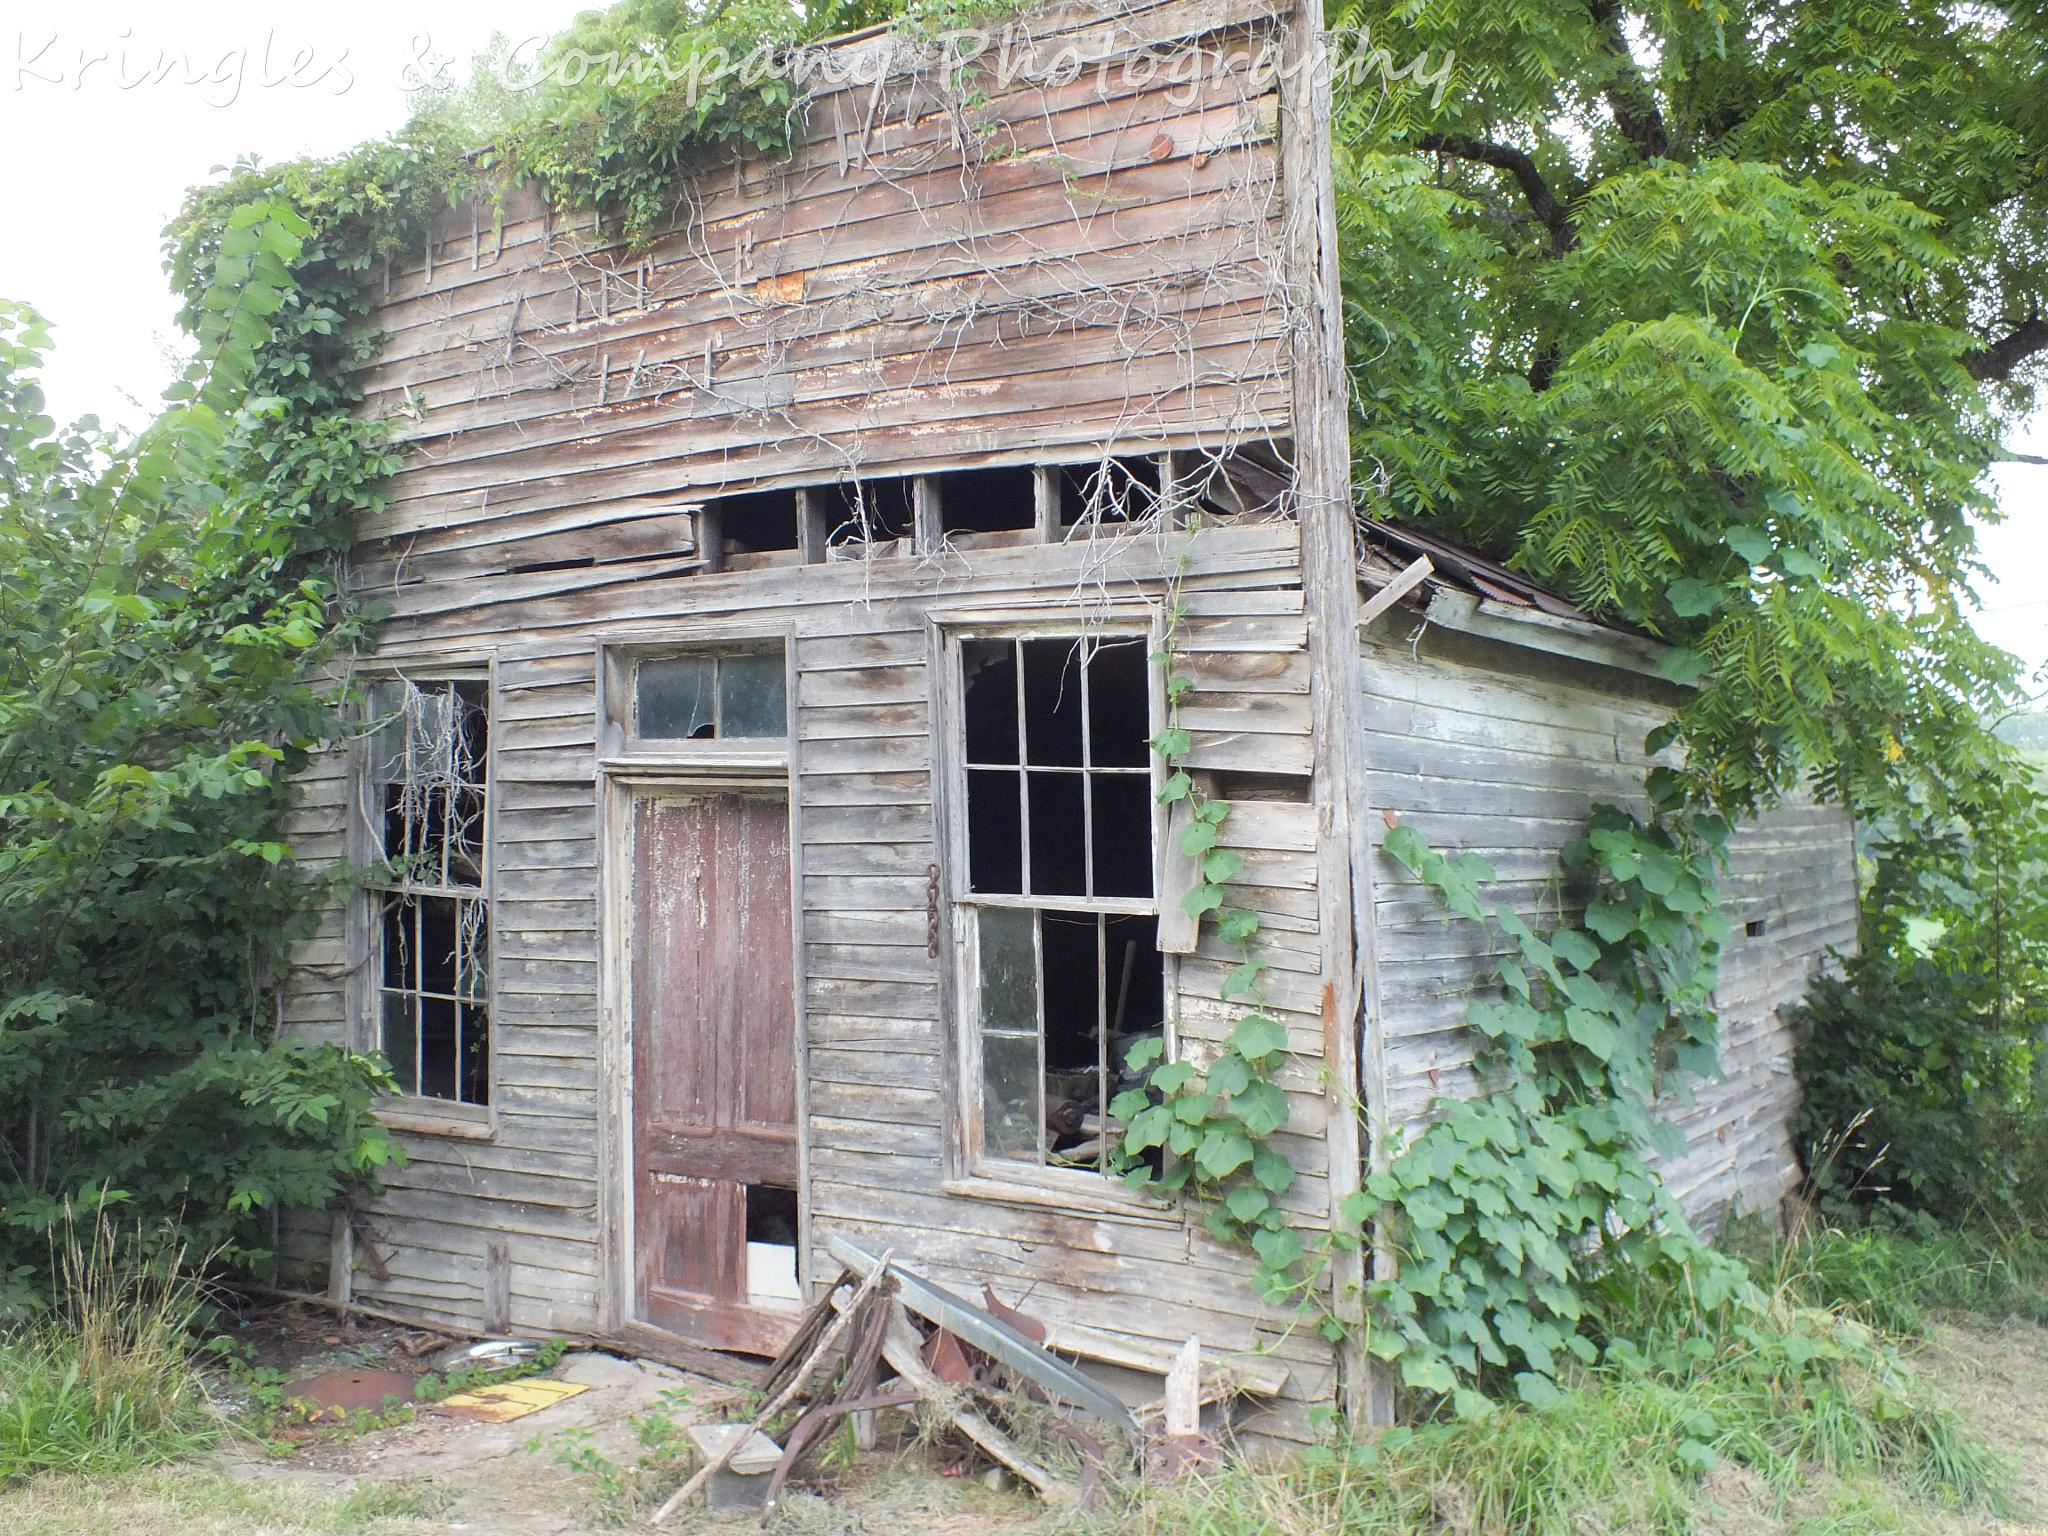 1800 s Country Store  by don.wormsley